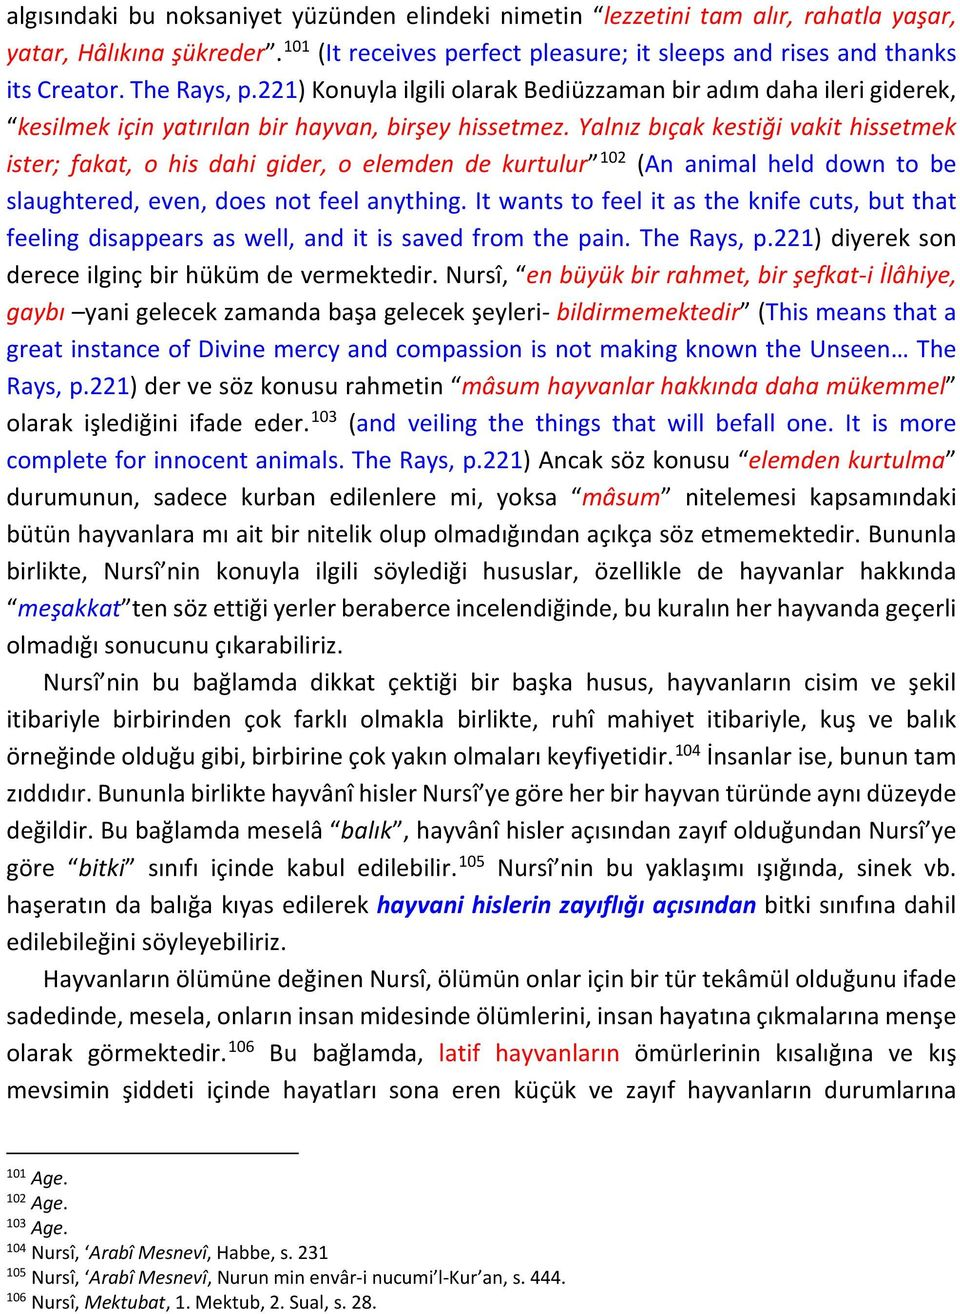 Yalnız bıçak kestiği vakit hissetmek ister; fakat, o his dahi gider, o elemden de kurtulur 102 (An animal held down to be slaughtered, even, does not feel anything.